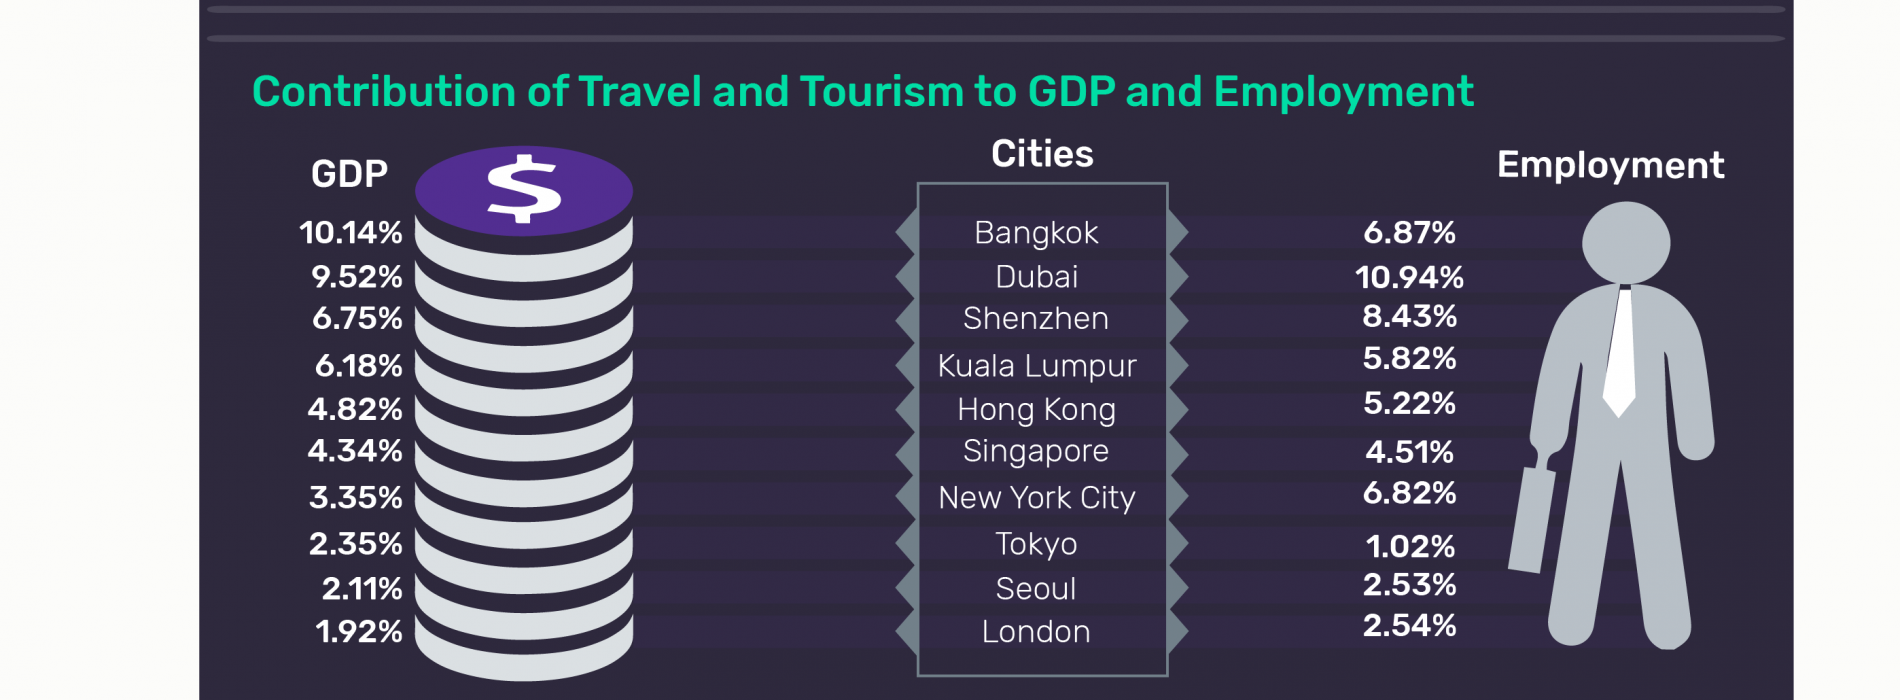 Asian cities dominate top 10 rankings of international tourist arrivals in 2017, says GlobalData